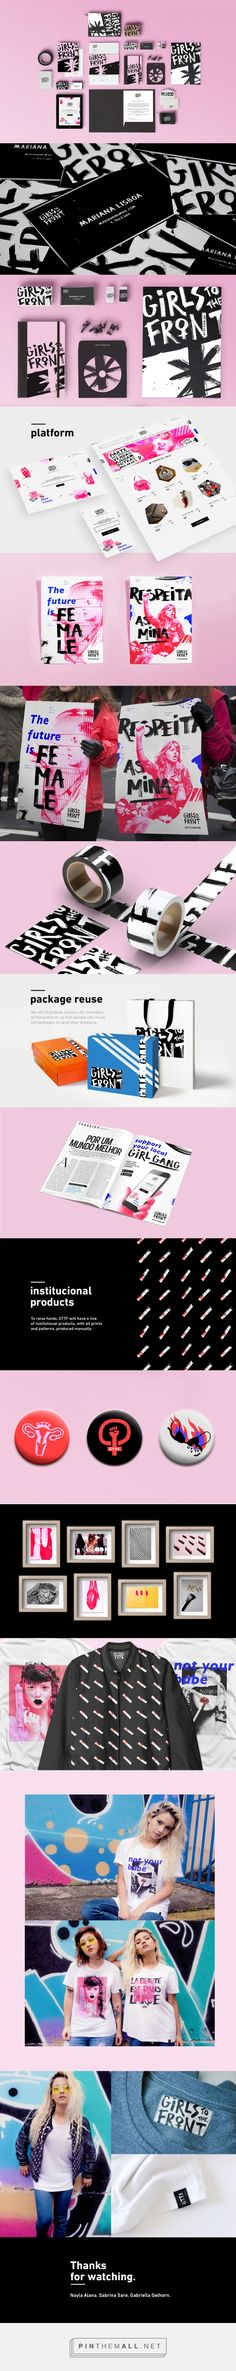 GTTF Lifestyle Branding by Nayla Alana | Fivestar Branding Agency – Design and Branding Agency & Curated Inspiration Gallery